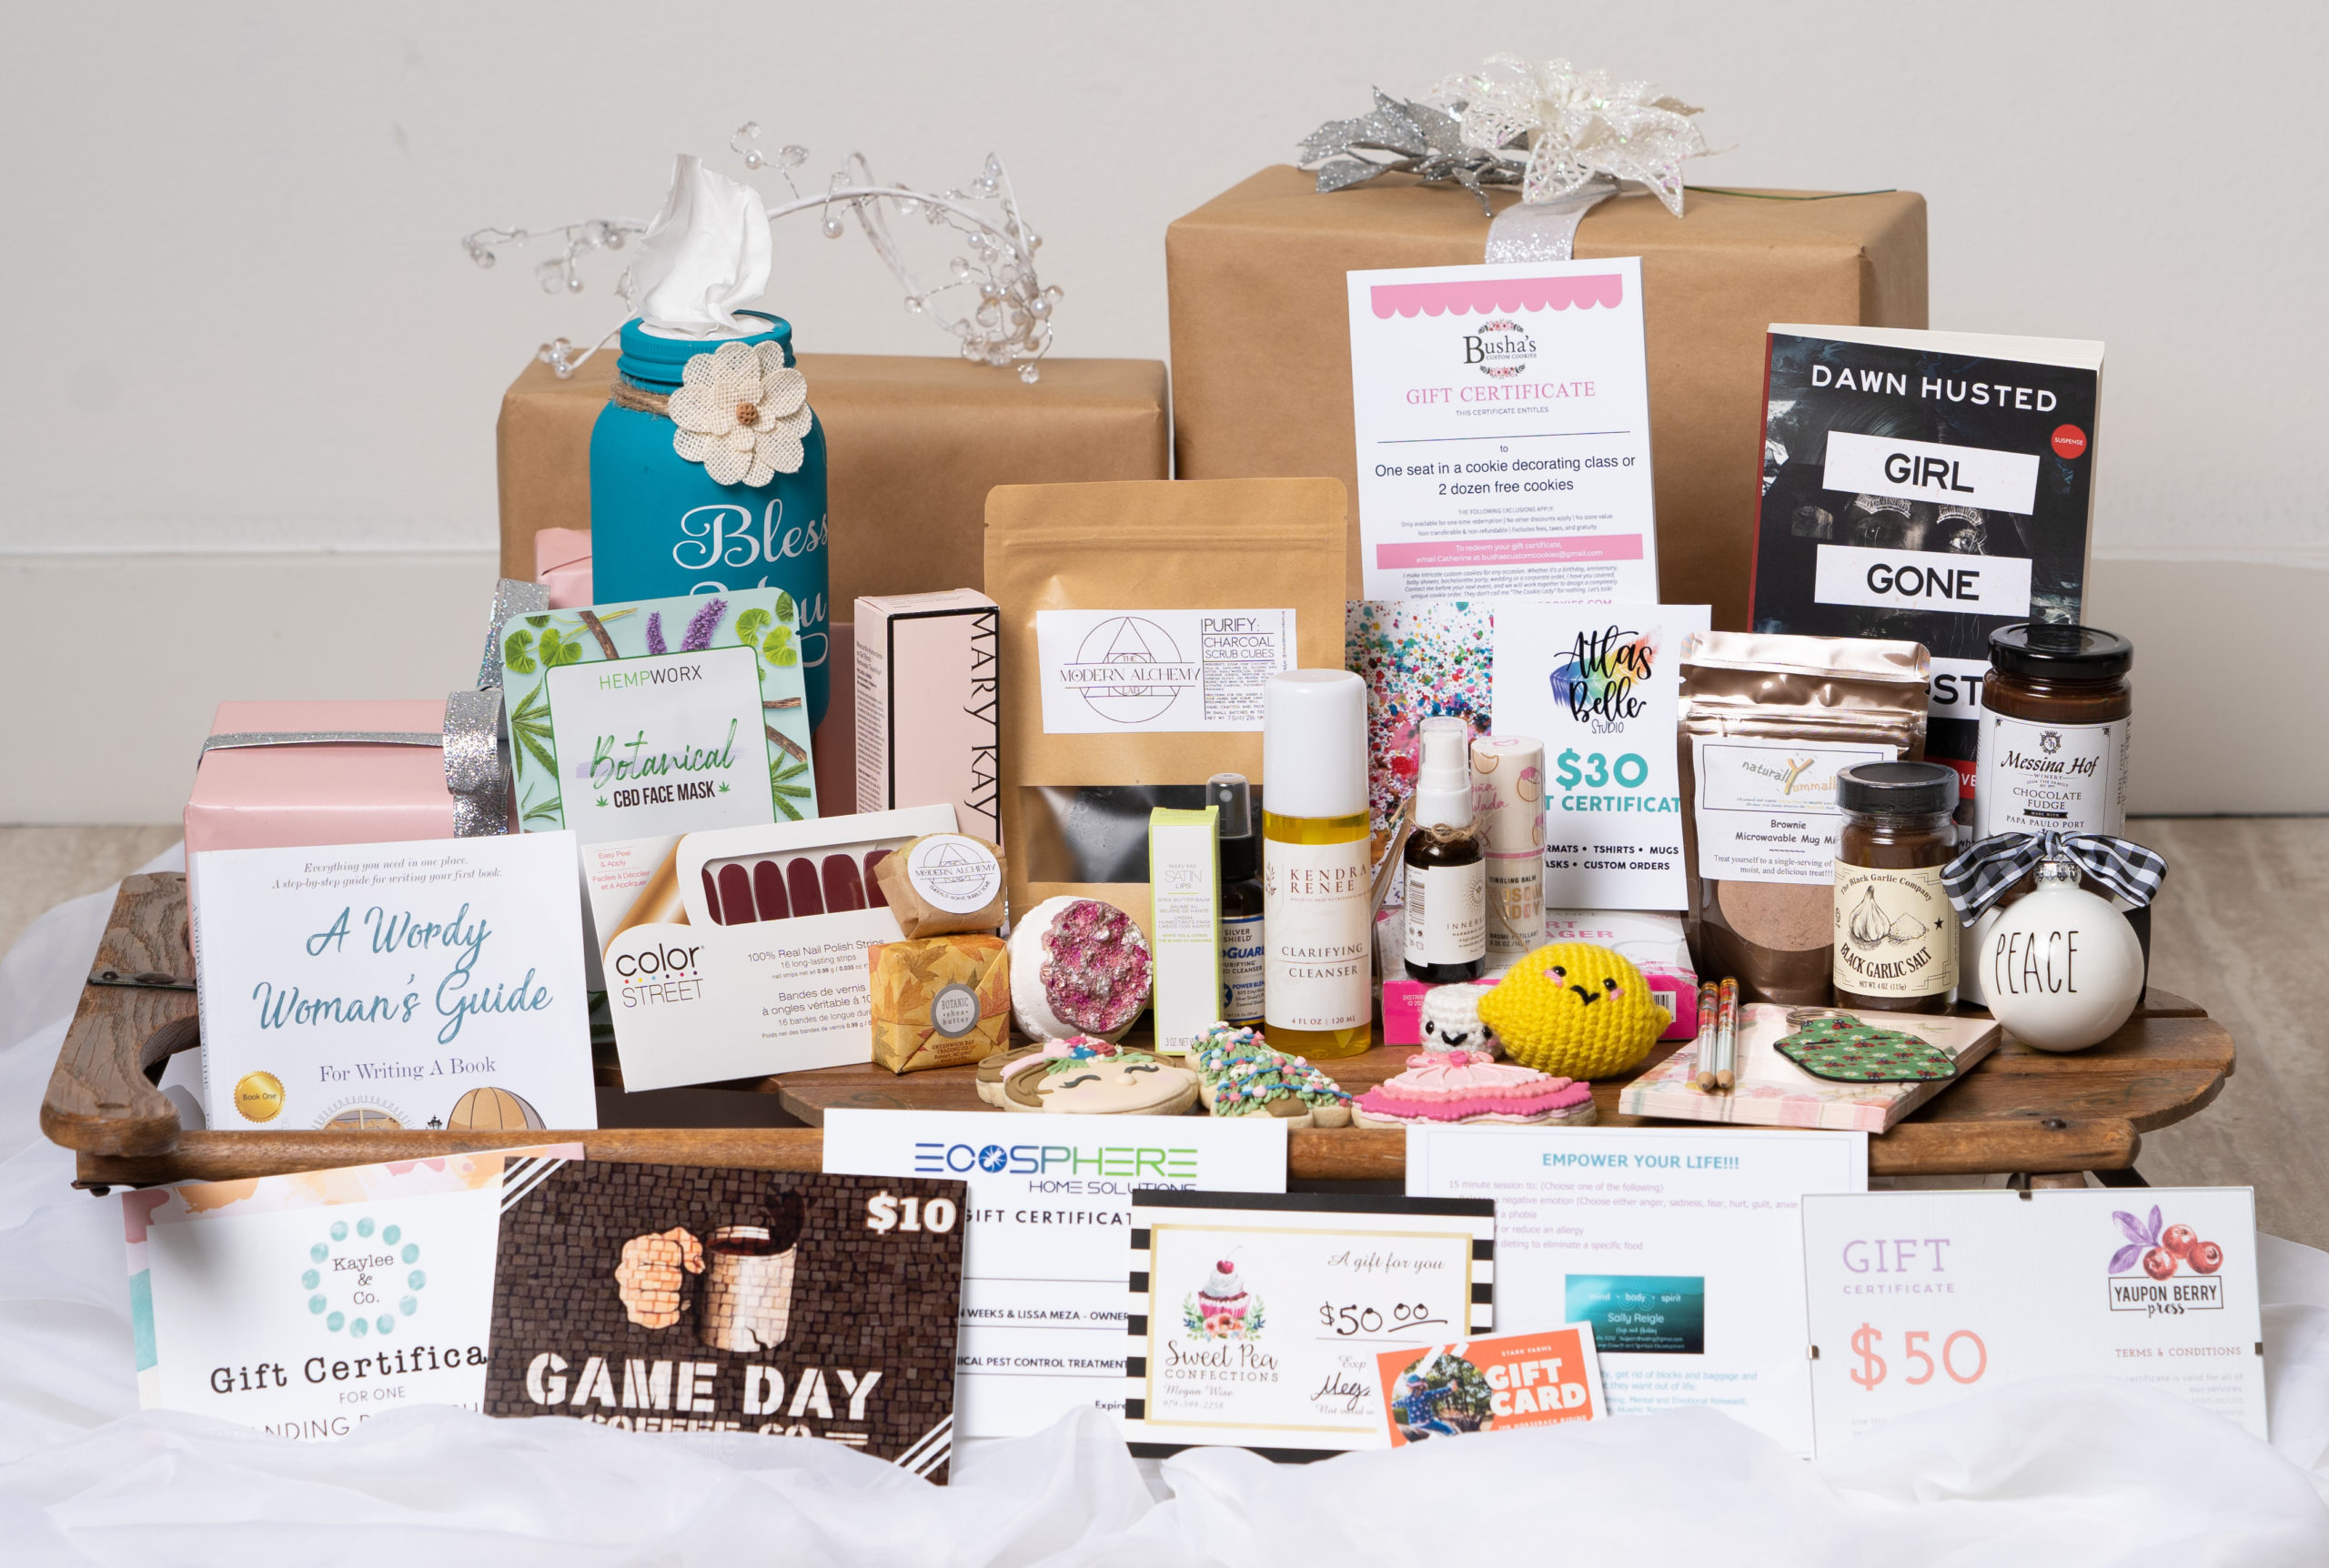 Press Release: WE BCS Creates Holiday Boxes To Highlight Local Women Entrepreneurs And Help Boost Local Economy During Pandemic